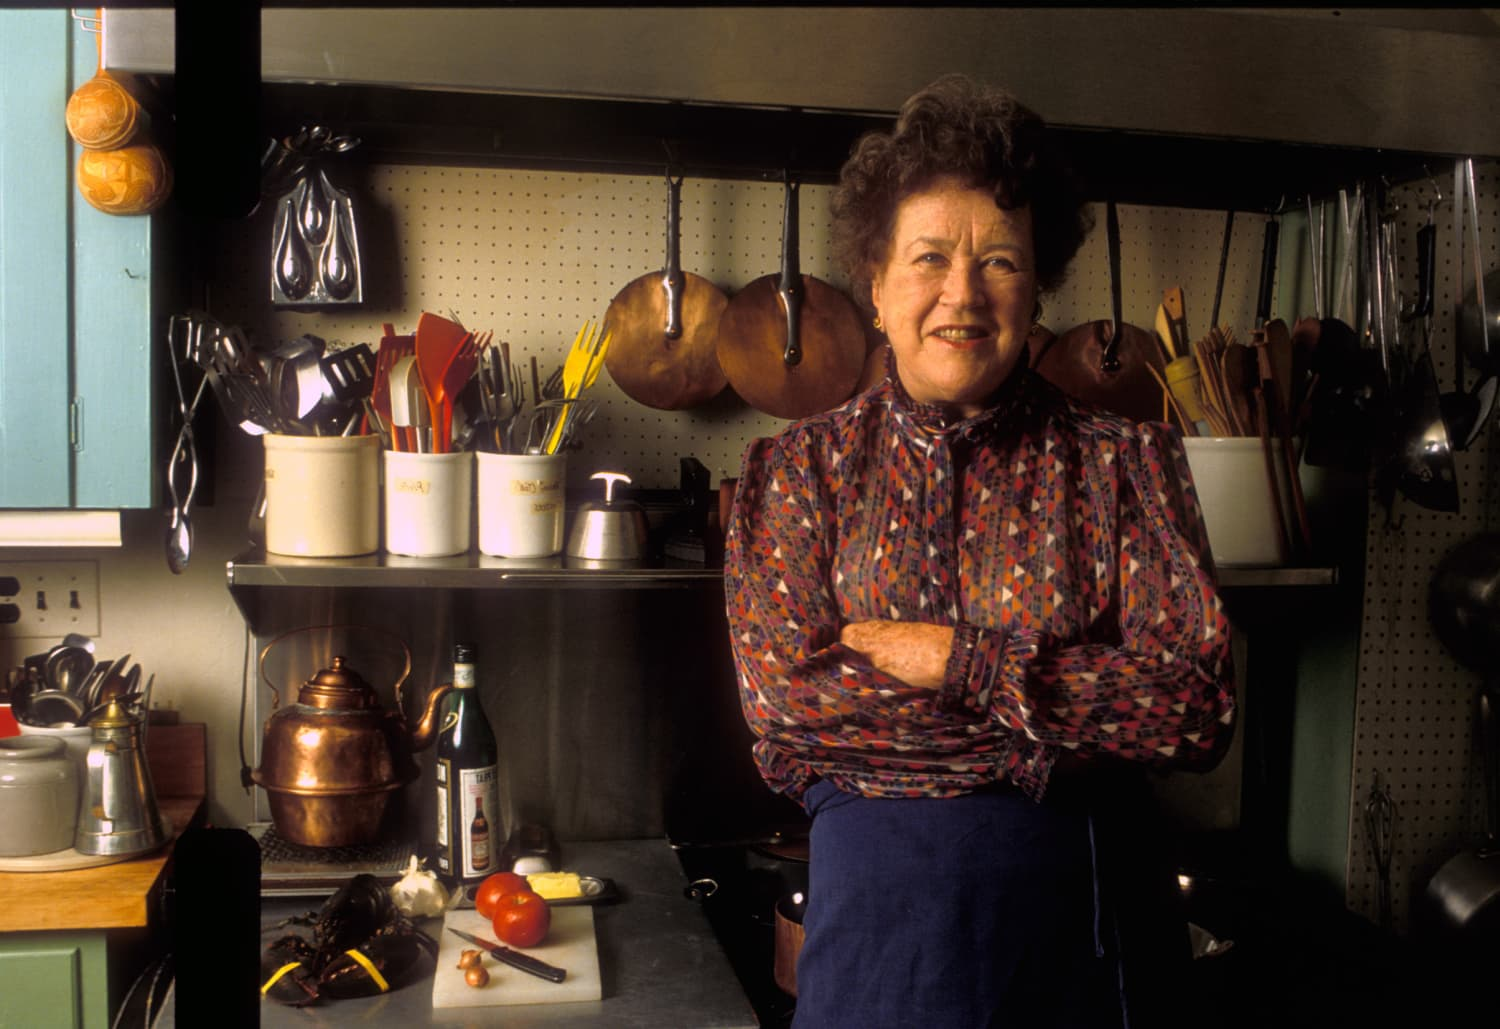 Celebrate Julia Child's Birthday By Planning a Trip to Visit Her Kitchen